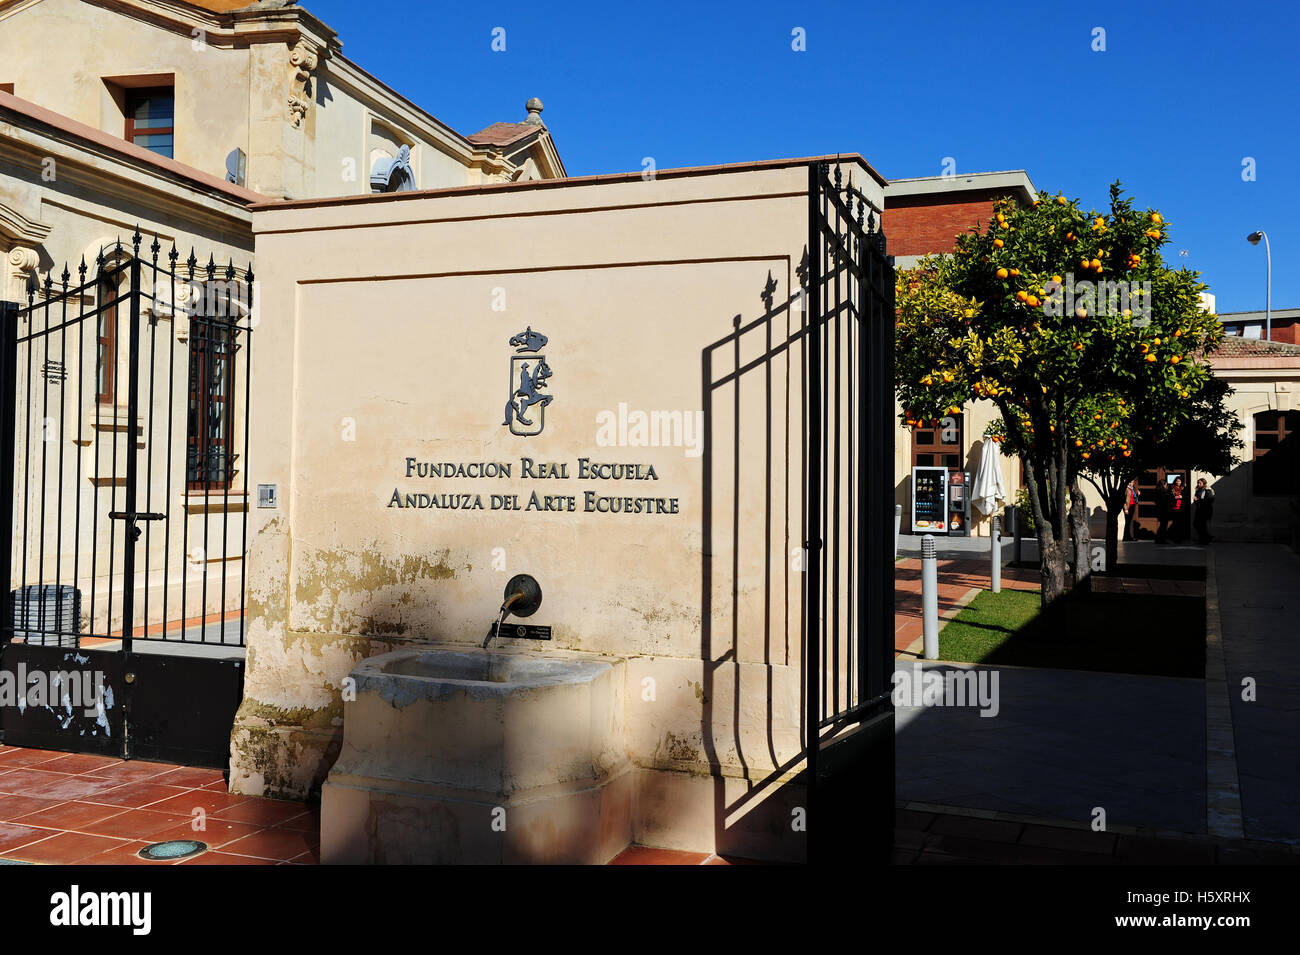 The Entrance To The Fundacion Real Escuela Andaluza Del Arte Ecuestre Stock Photo Alamy